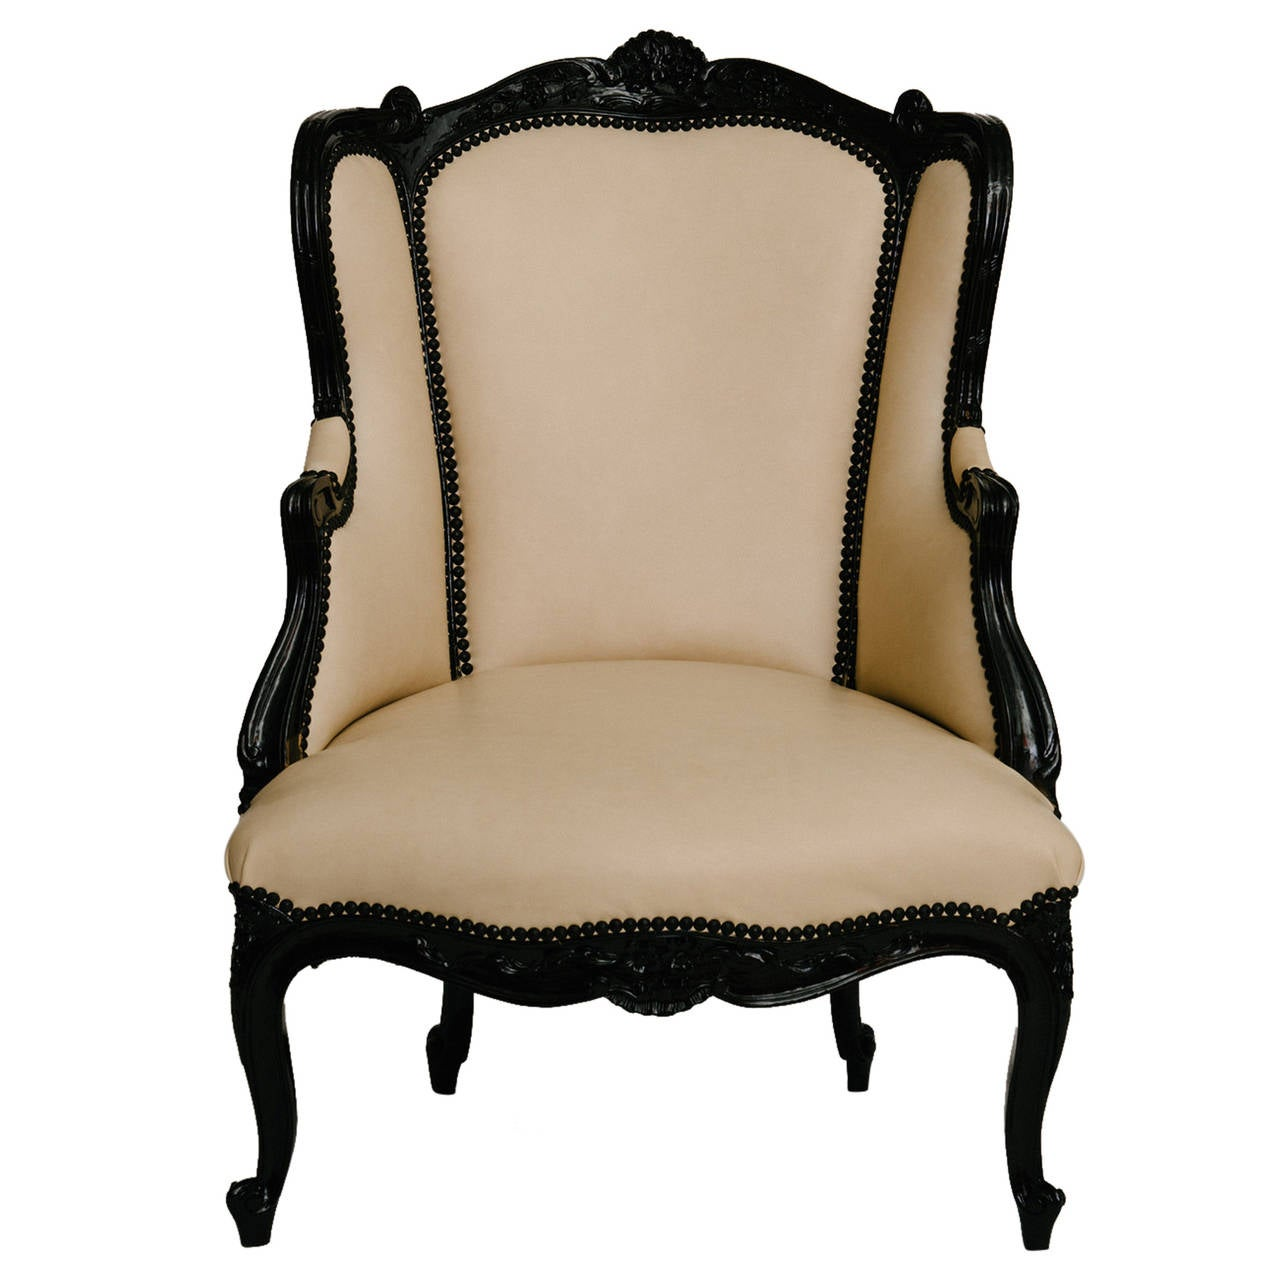 19th Century Black Lacquered Bergere